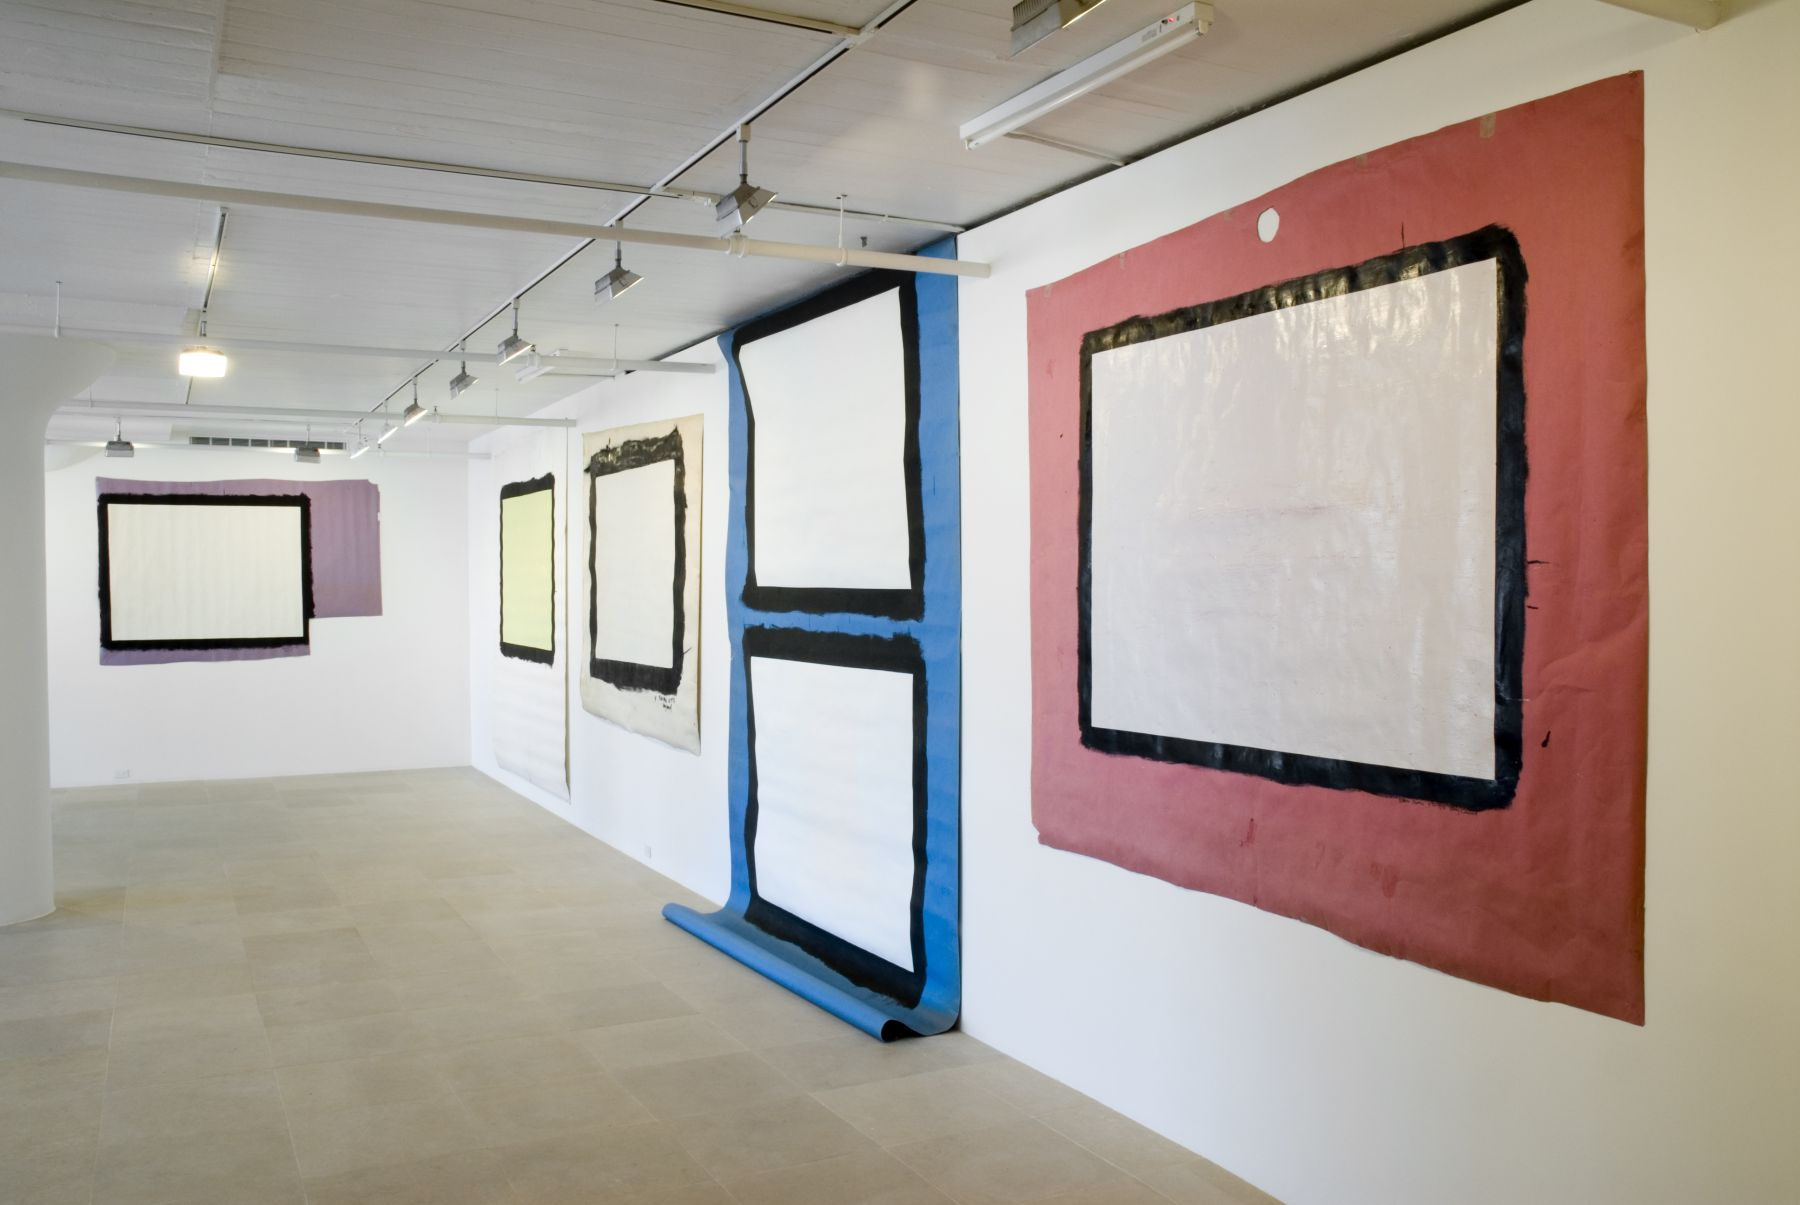 Tony Conrad, Installation view, Greene Naftali, New York, 2007